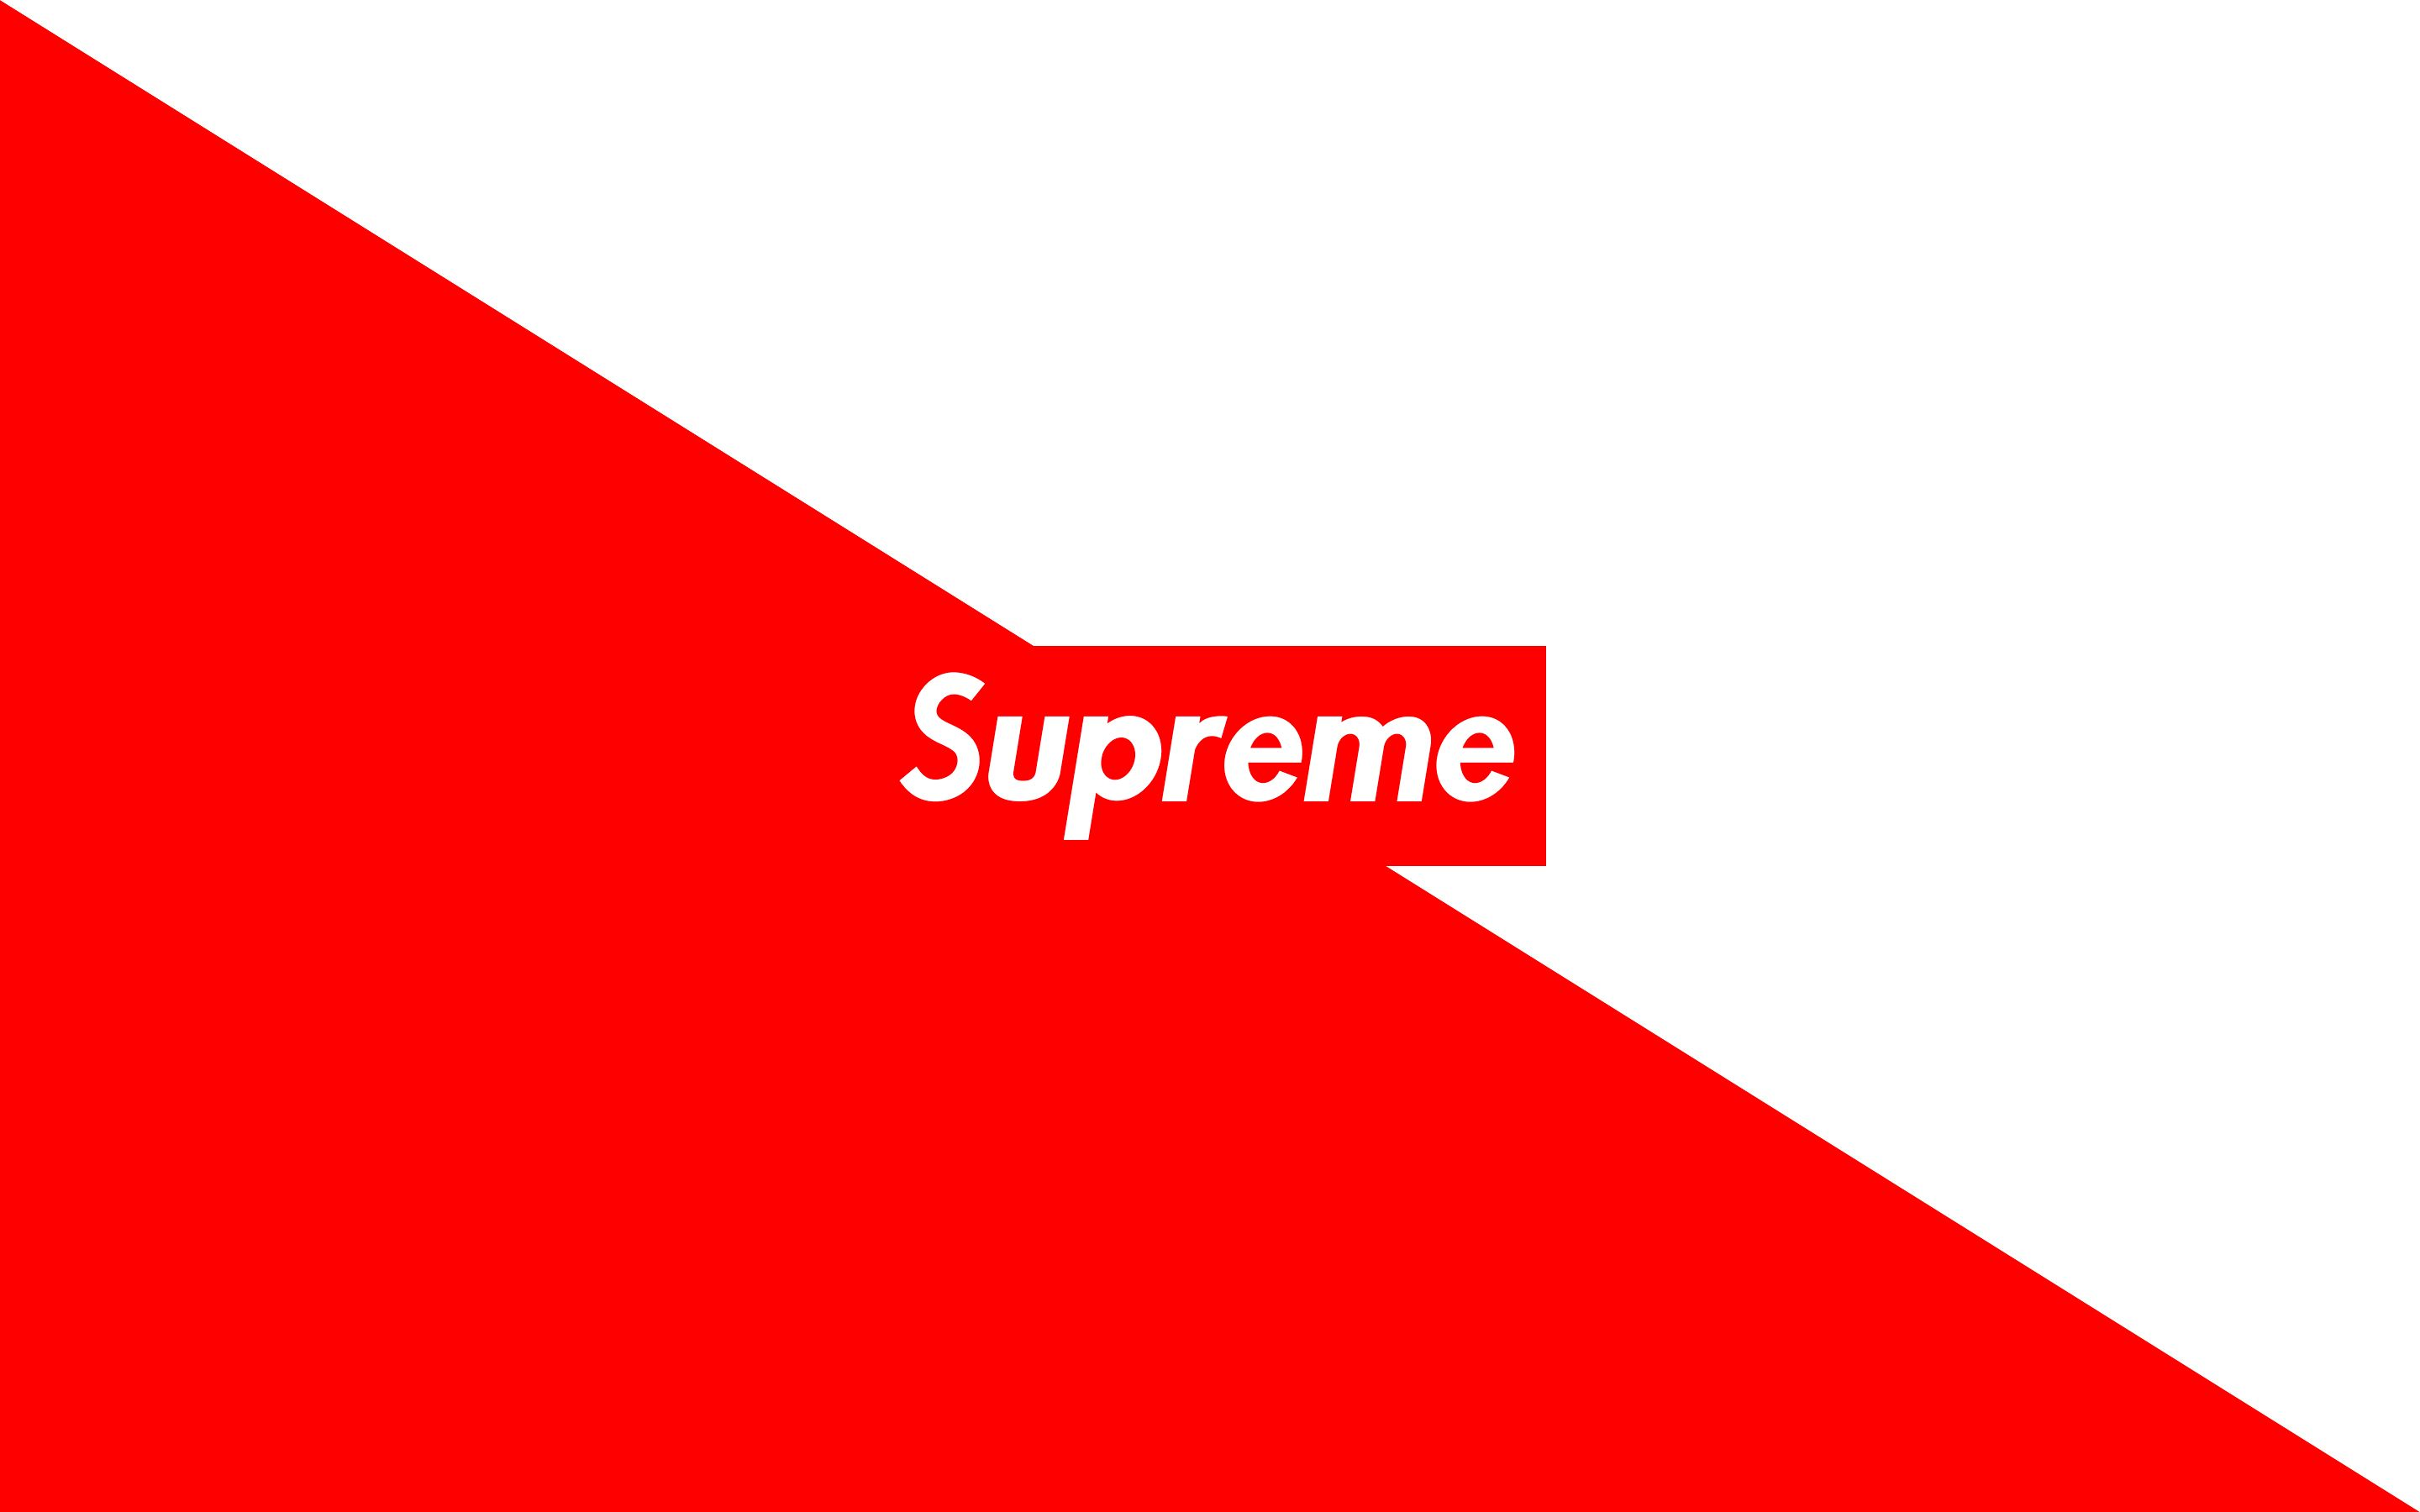 2880x1800 Supreme | Know Your Meme